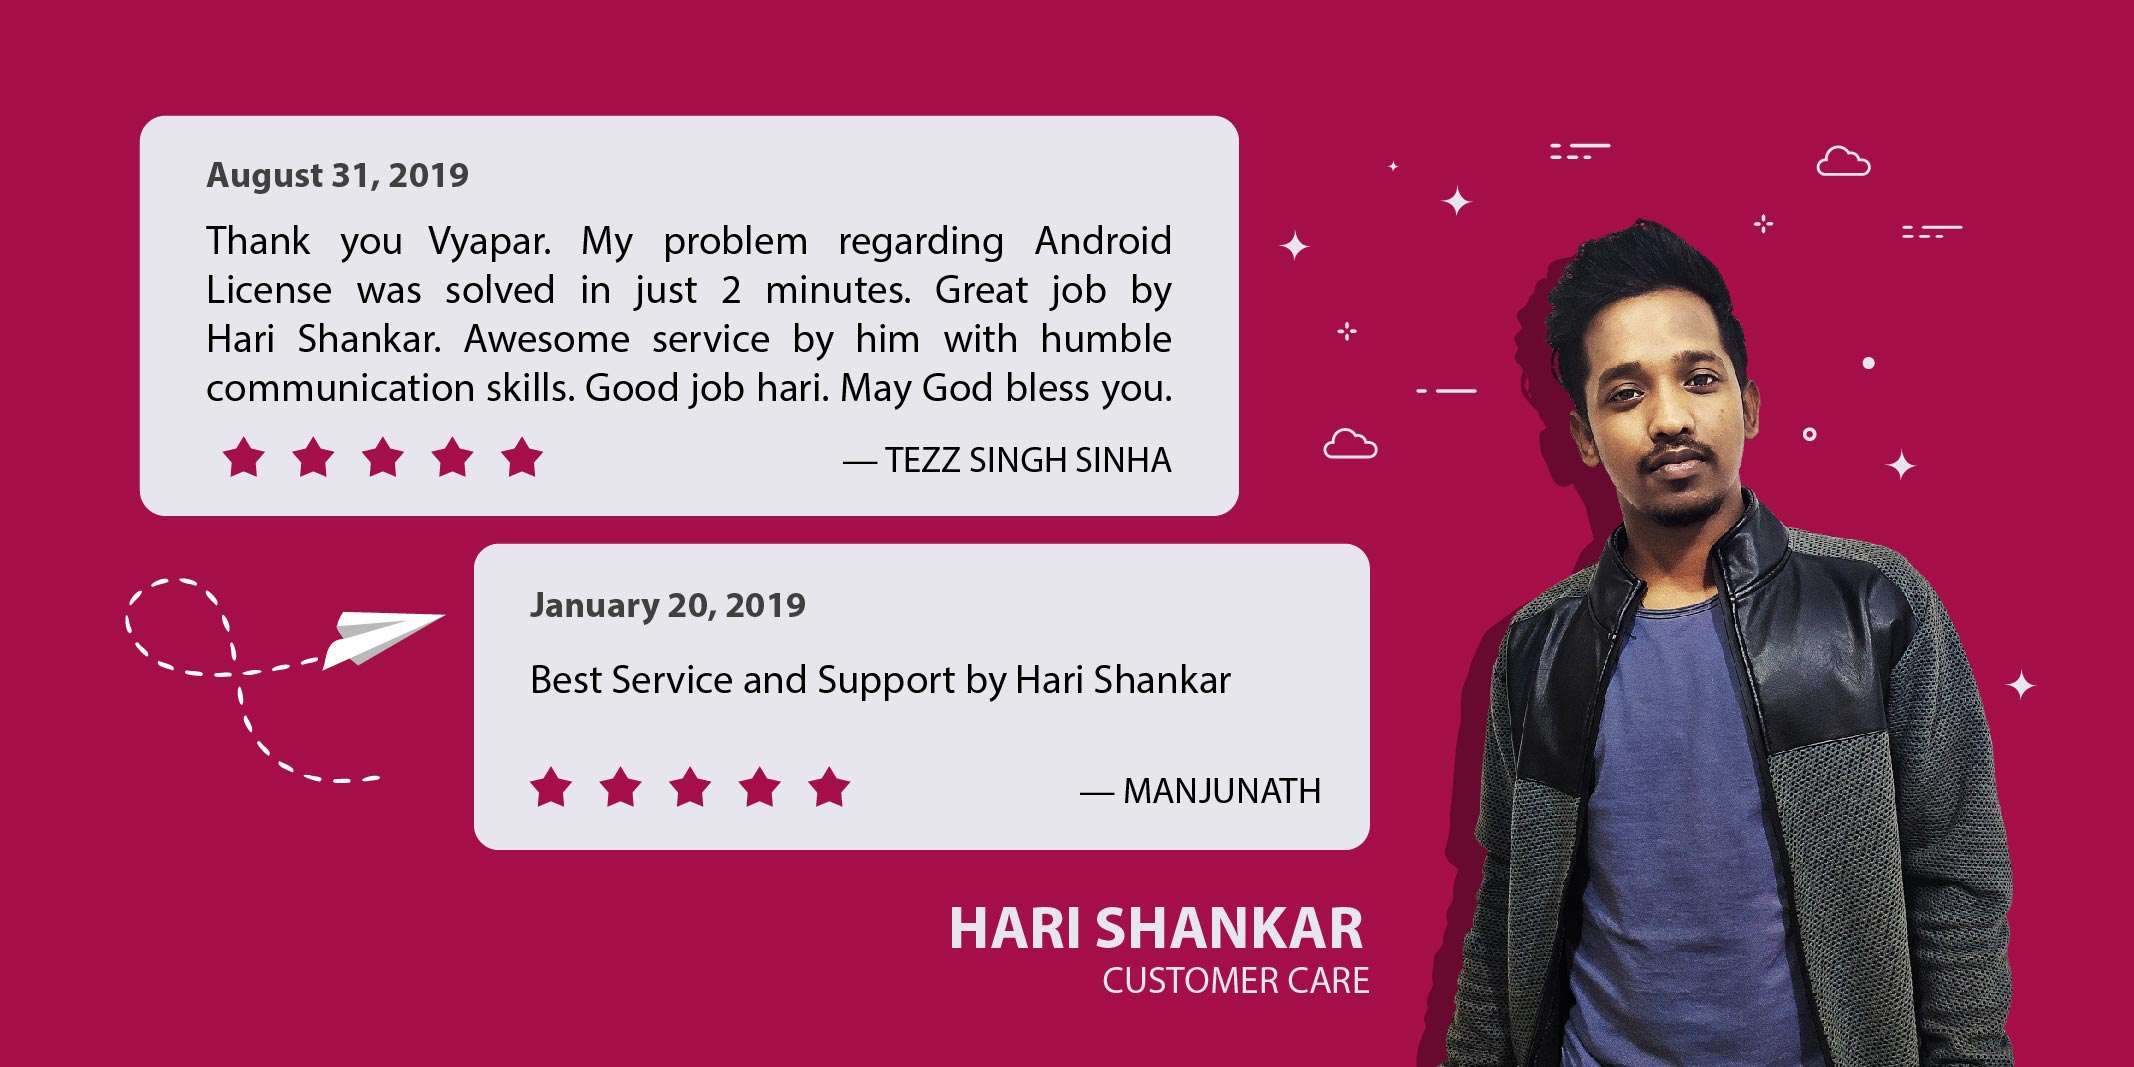 Solving Problem With Patience: How Hari Shankar is Appreciated by Vyapar's customers!